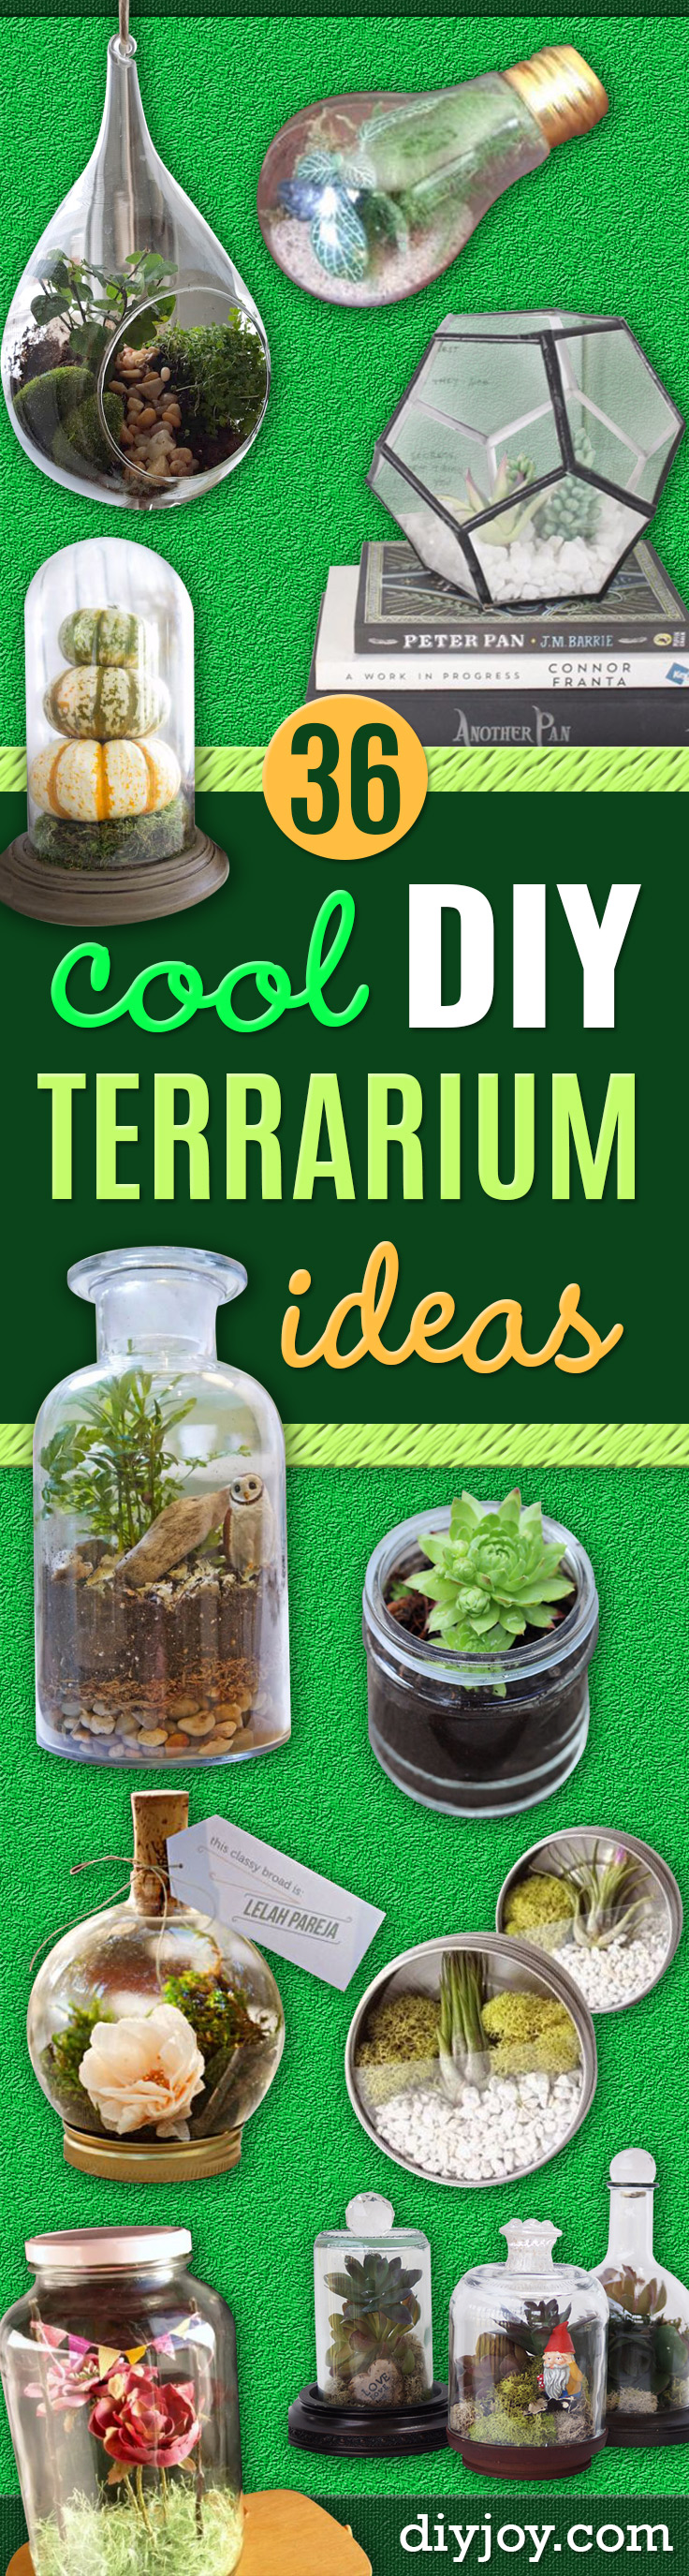 DIY Terrarium Ideas - Cool Terrariums and Crafts With Mason Jars, Succulents, Wood, Geometric Designs and Reptile, Acquarium - Easy DIY Terrariums for Adults and Kids To Make at Home